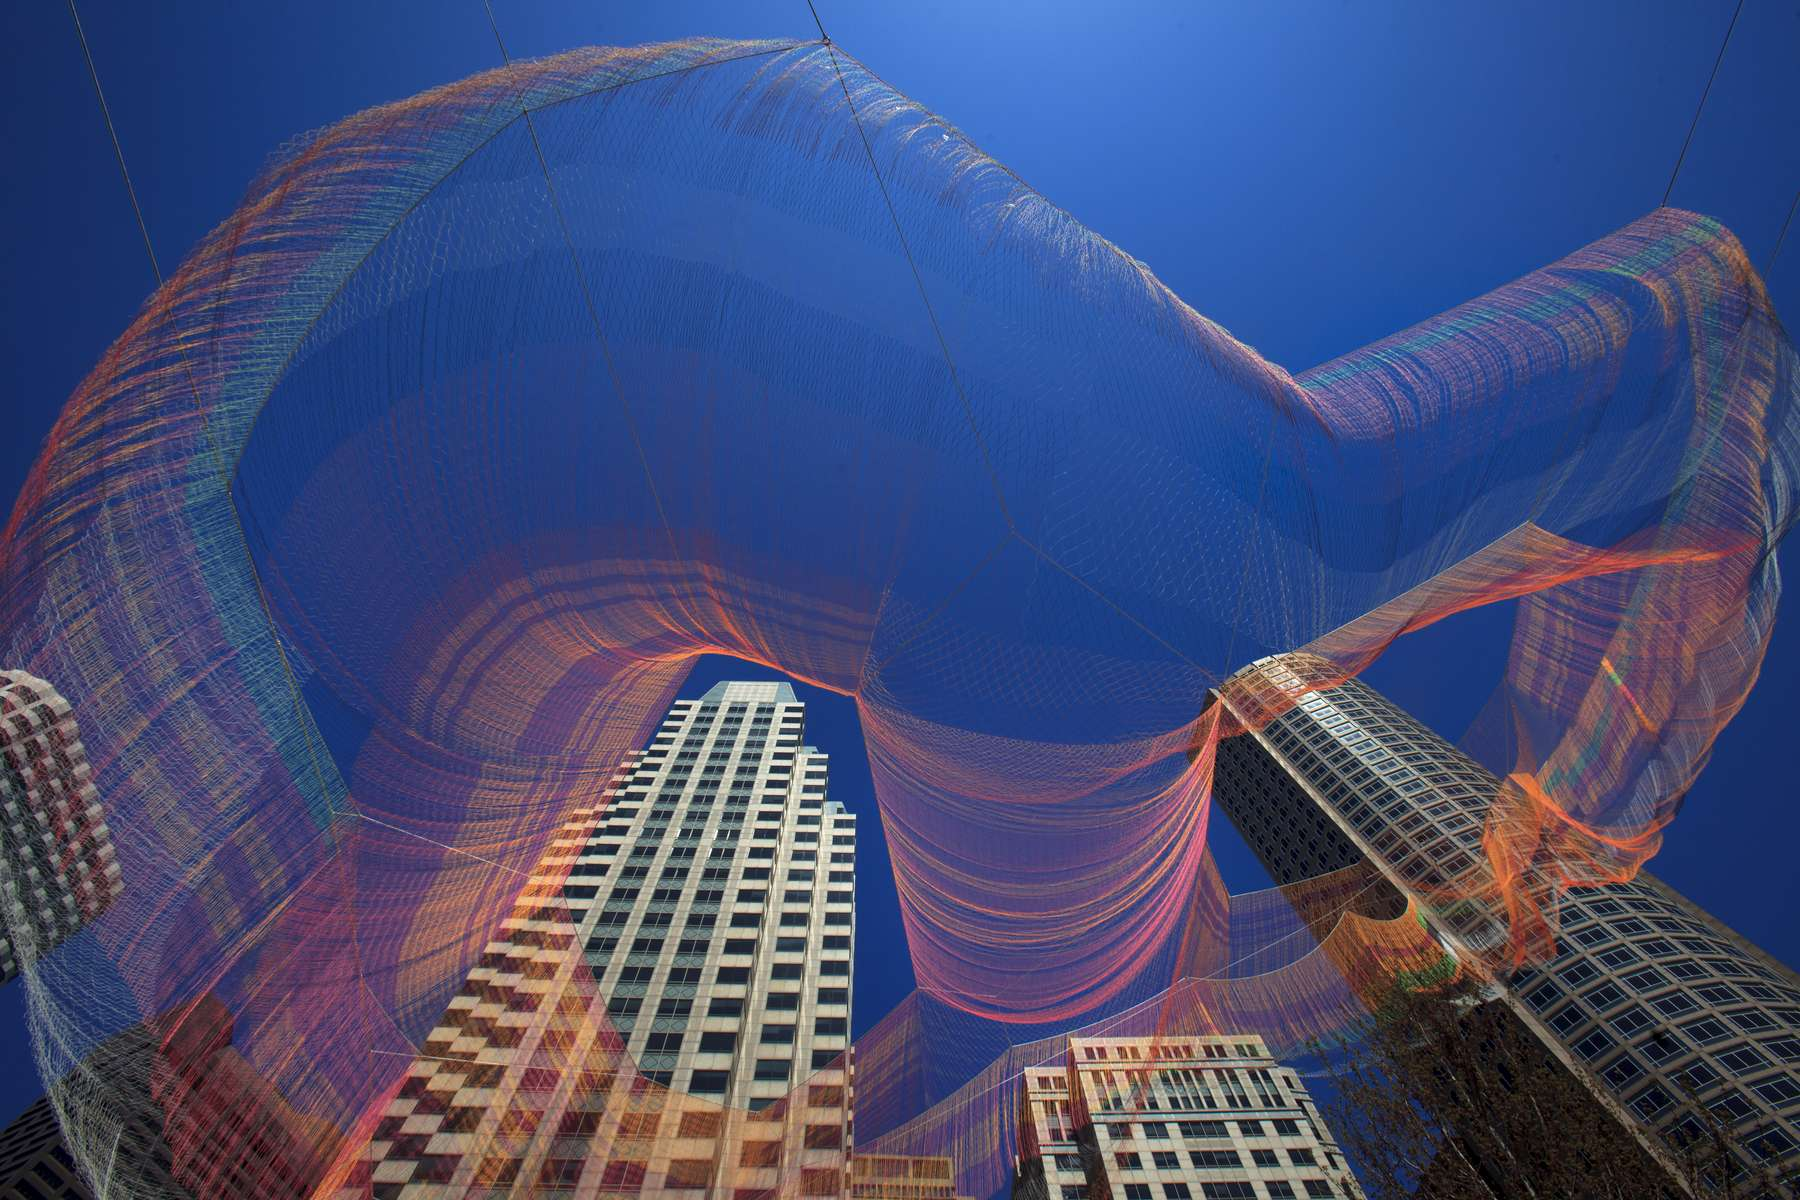 5/03/2015 - Boston, MA -  A new aerial sculpture by artist Janet Echelman was suspended above the Rose Kennedy Greenway on Sunday, May 3, 2015. Topic: EchelmanGreenway(4). Story by Malcolm Gay/Globe Staff. Photo by Dina Rudick/Globe Staff.